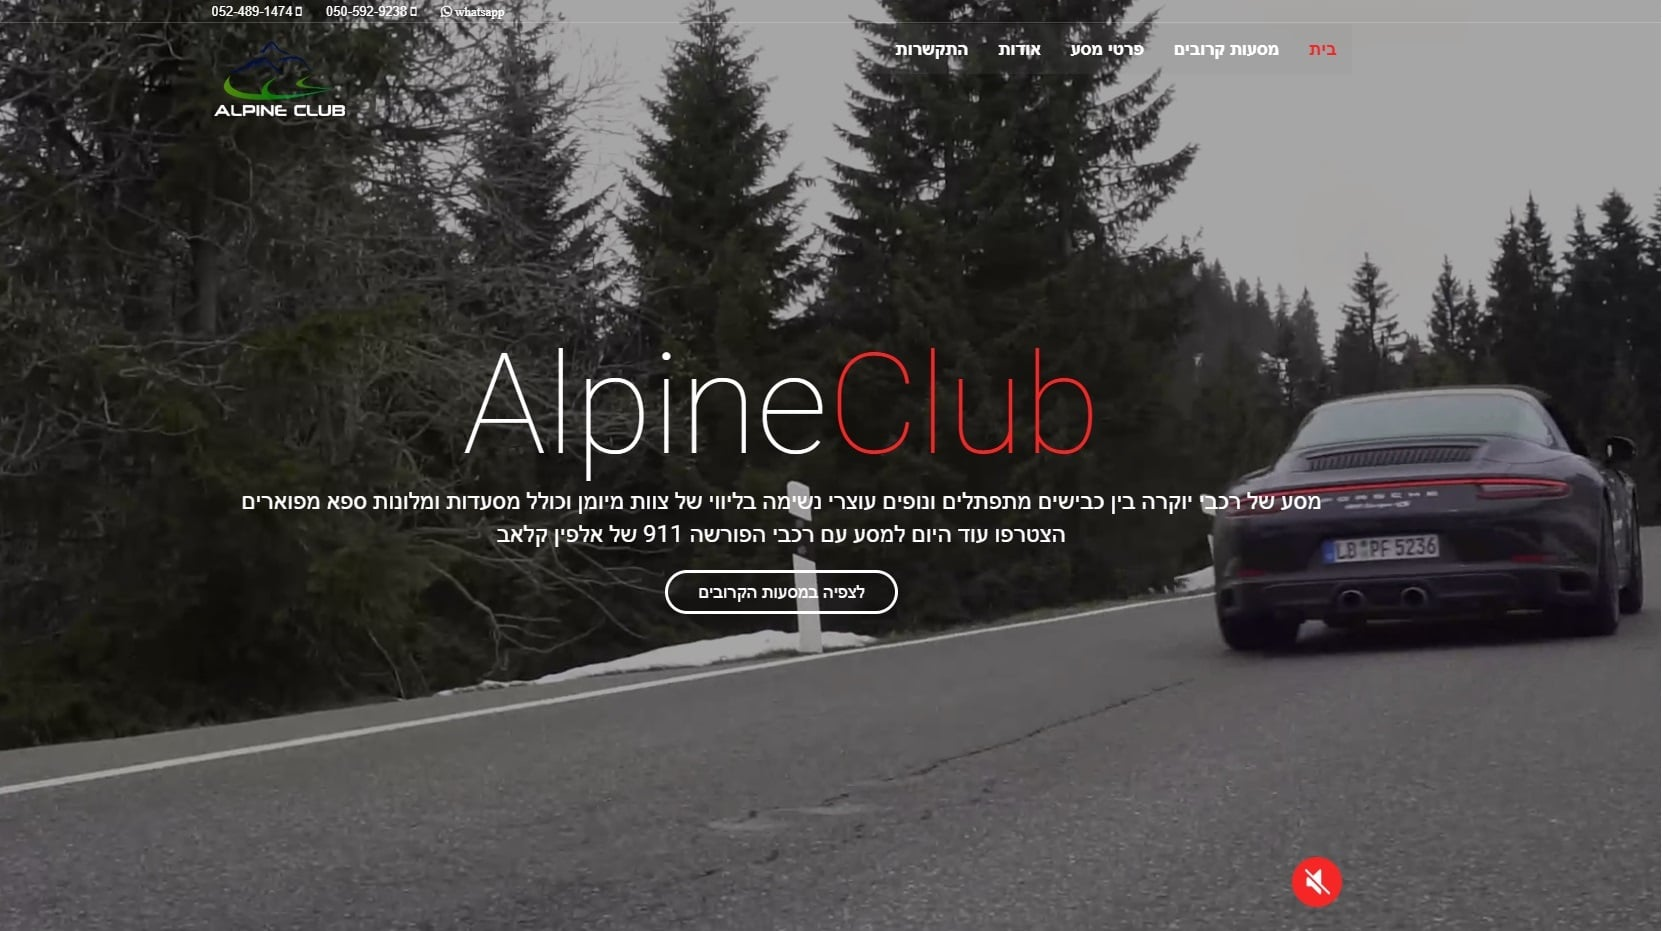 alpineclub.co.il